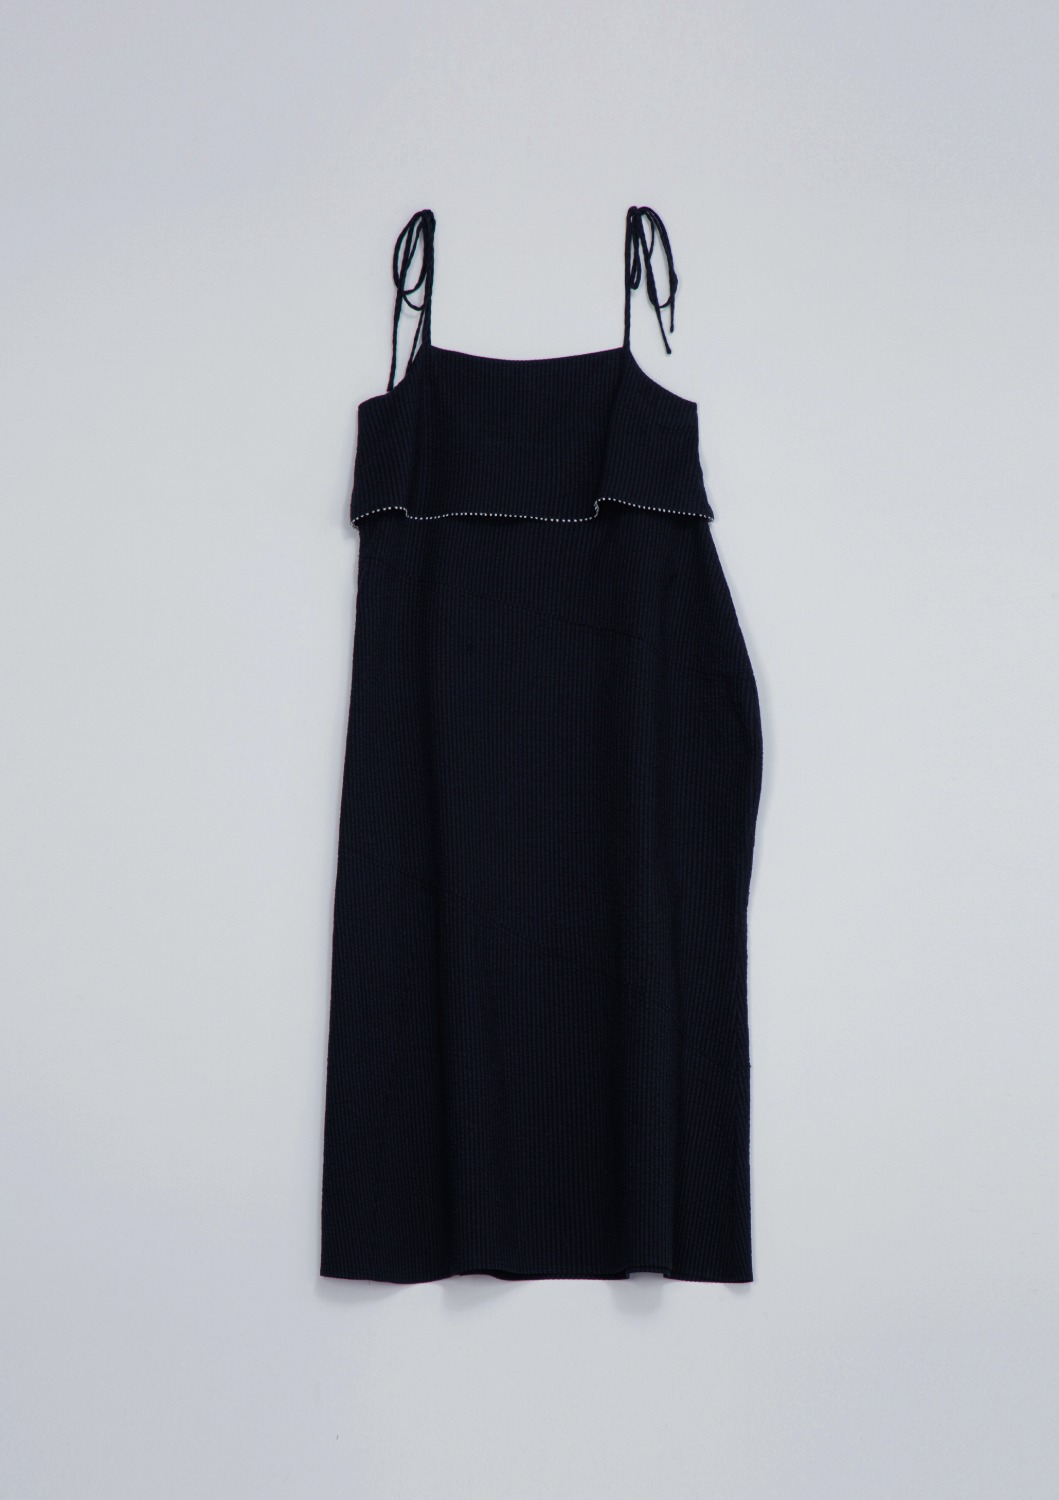 En Fete Slip Dress - Black Seersucker